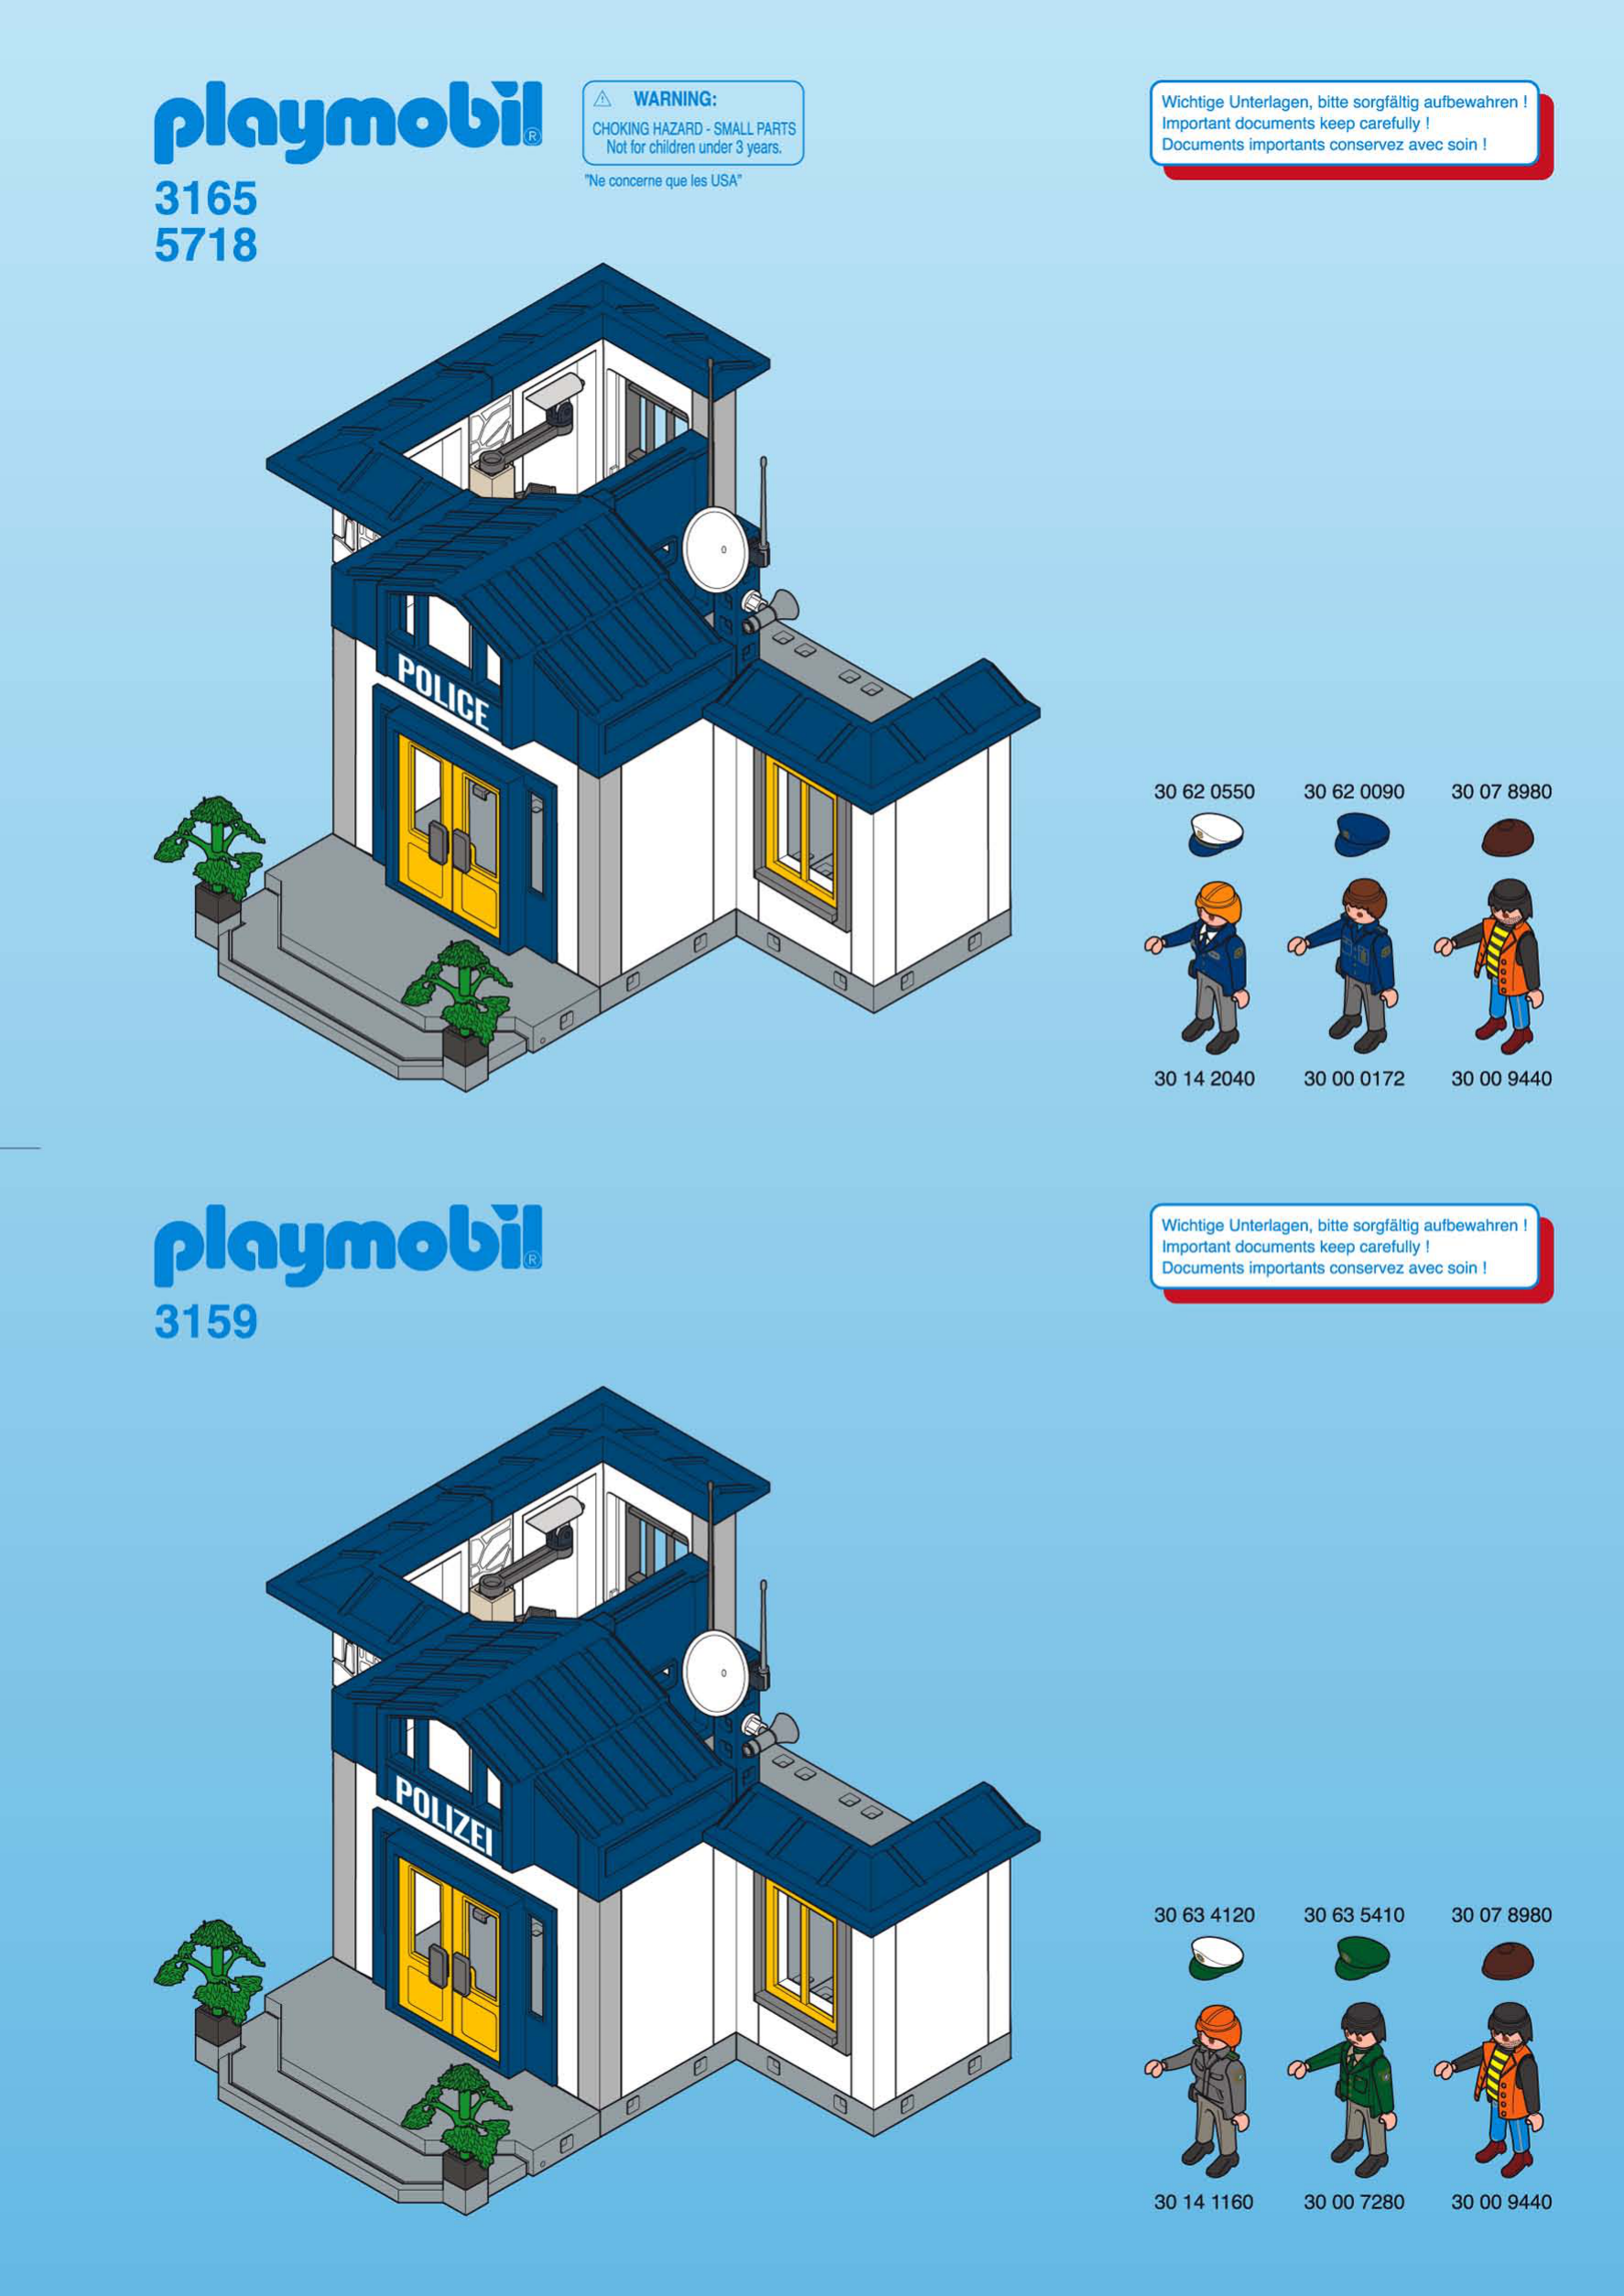 Playmobil police station instructions 6919